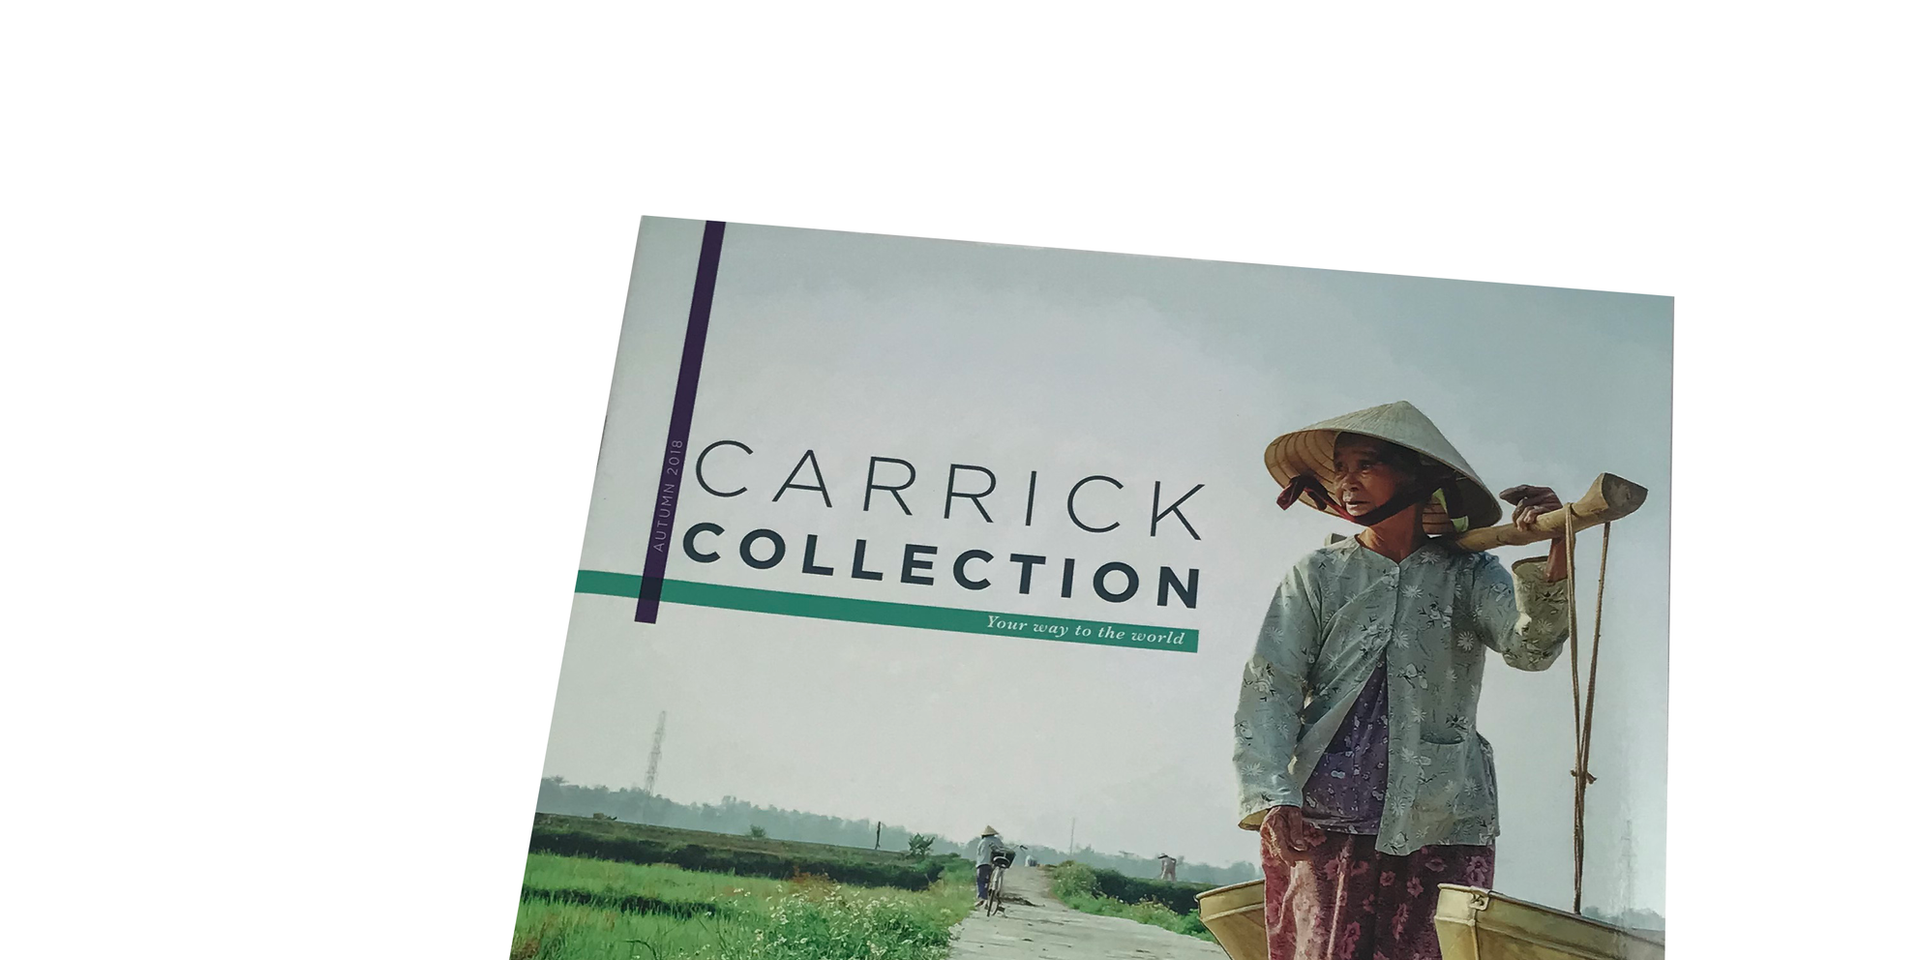 Carrick Collection